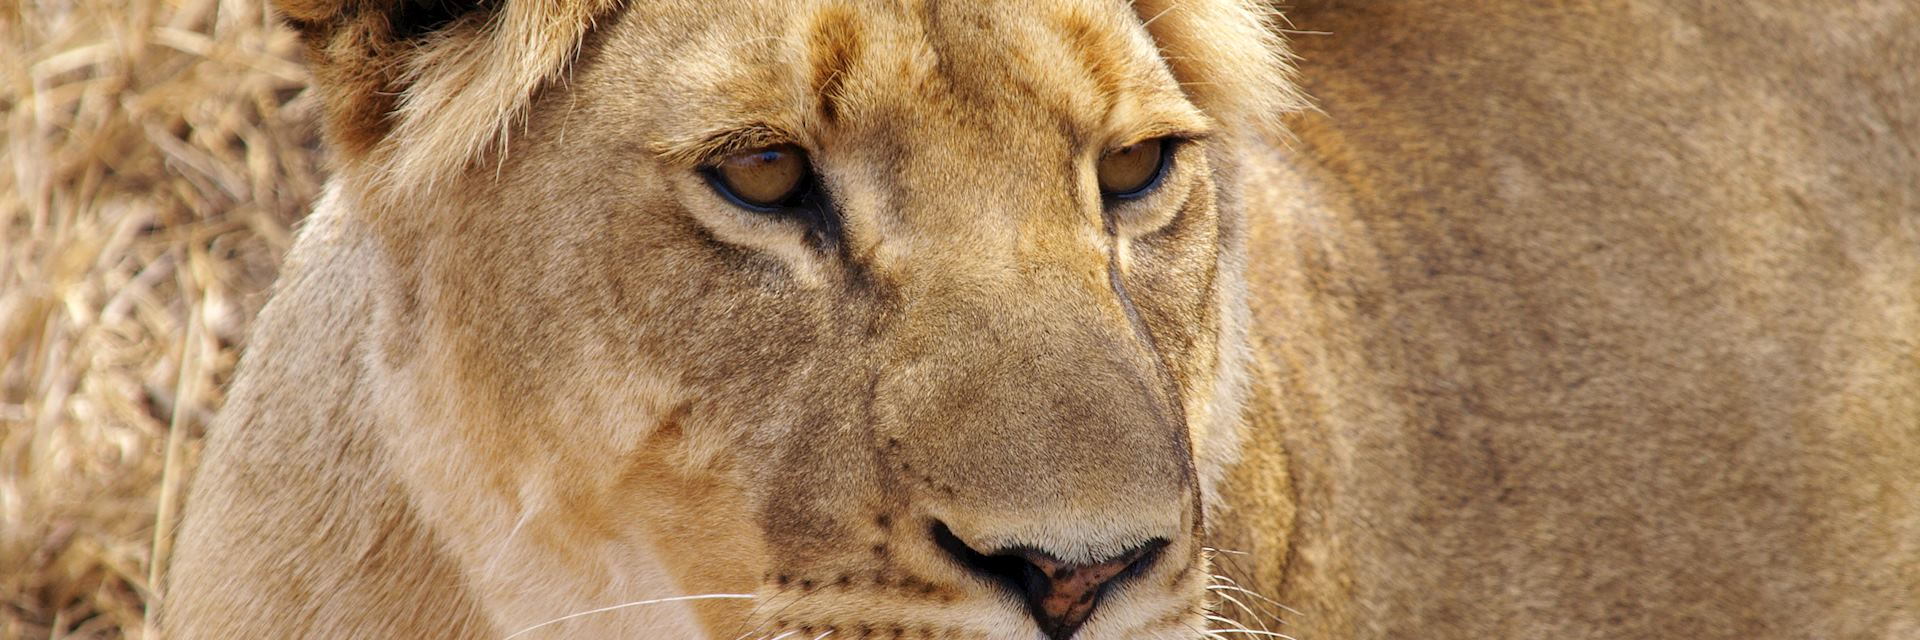 Lioness in Greater Makalali Game Reserve